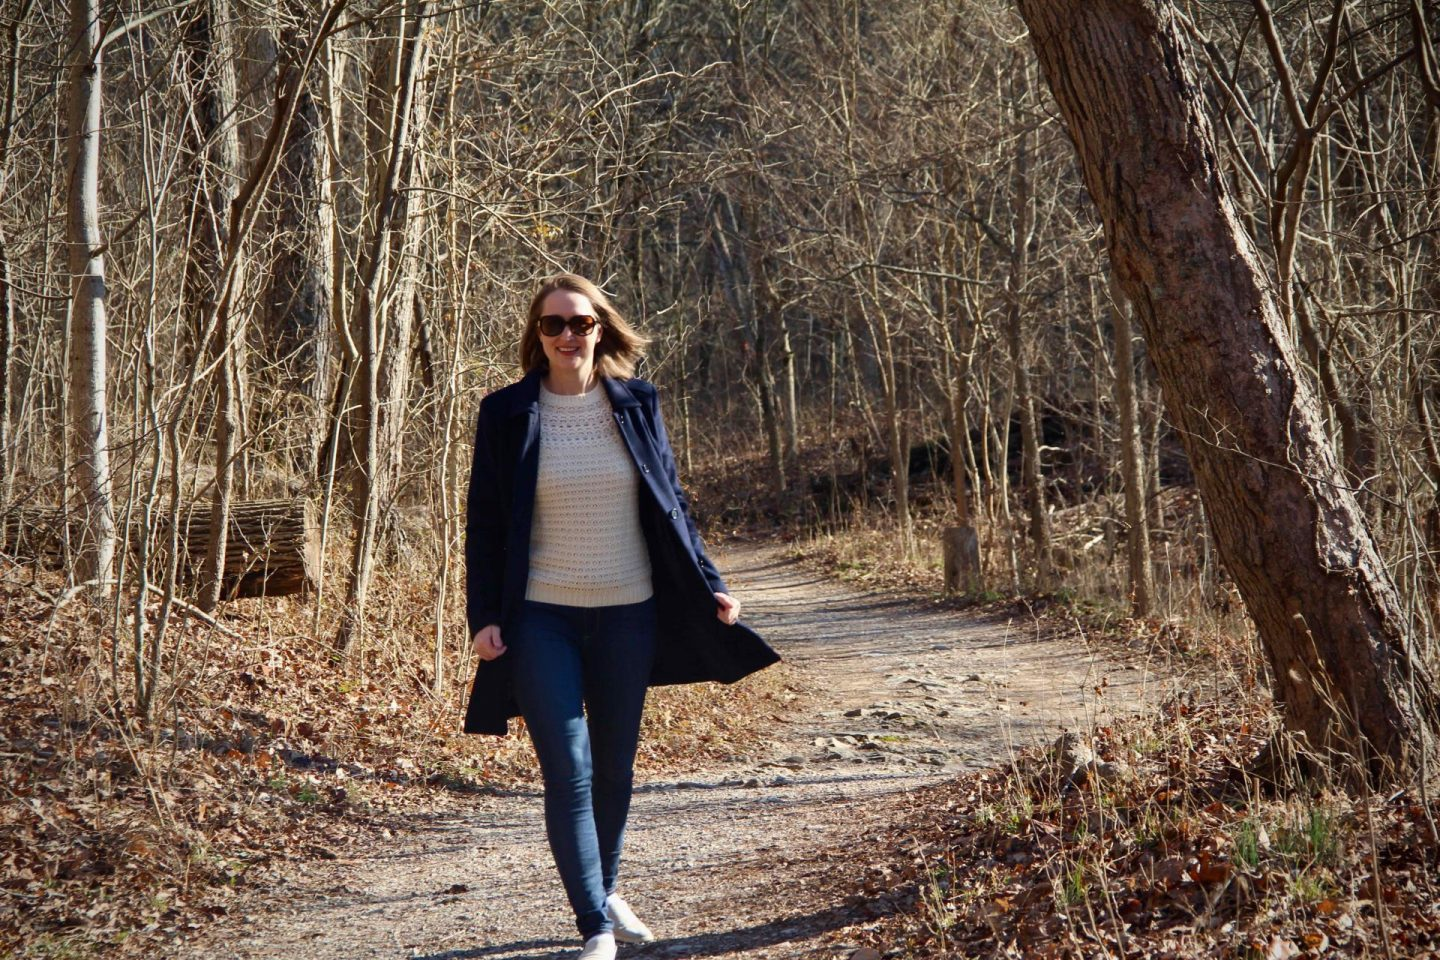 Walks through Sharon Woods | The Spectacular Adventurer